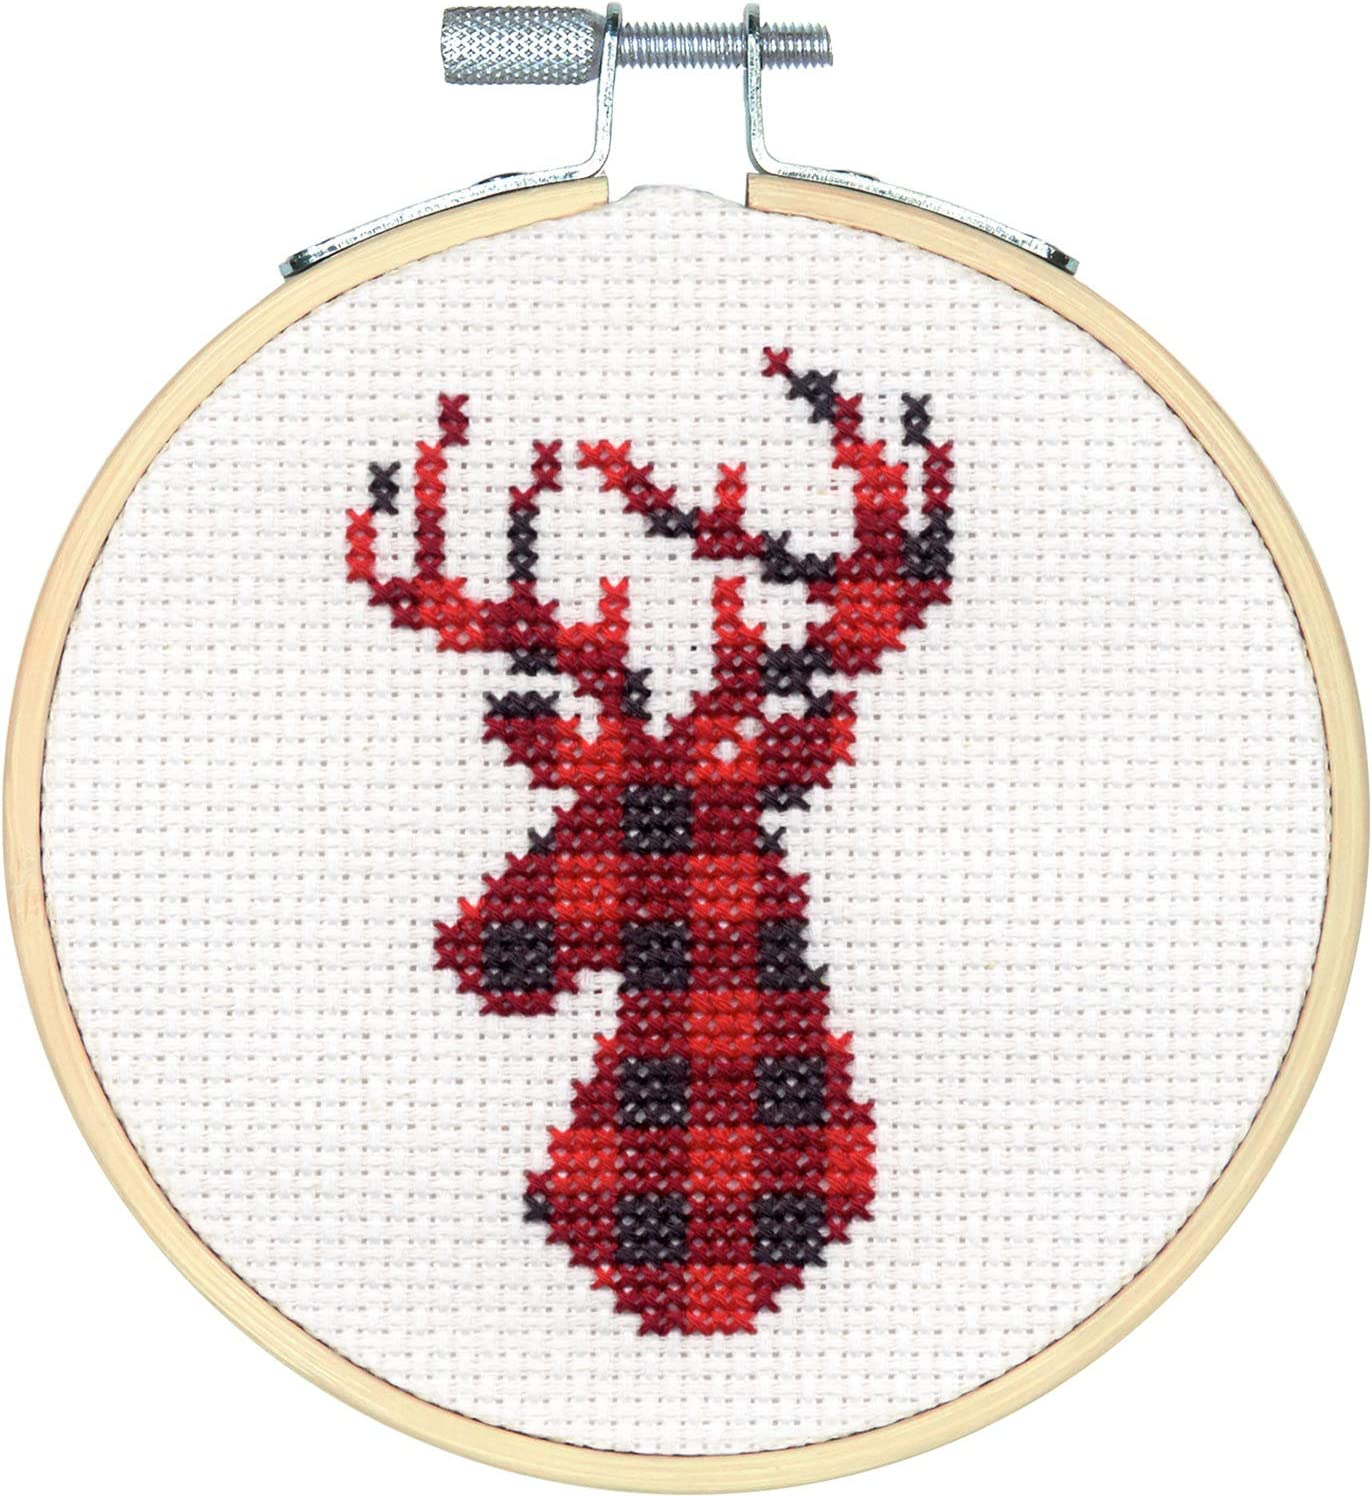 Plaid Reindeer Christmas Cross Stitch White 14 Count Aida Dimensions 72-76048 Kit 4 Embroidery Hoop